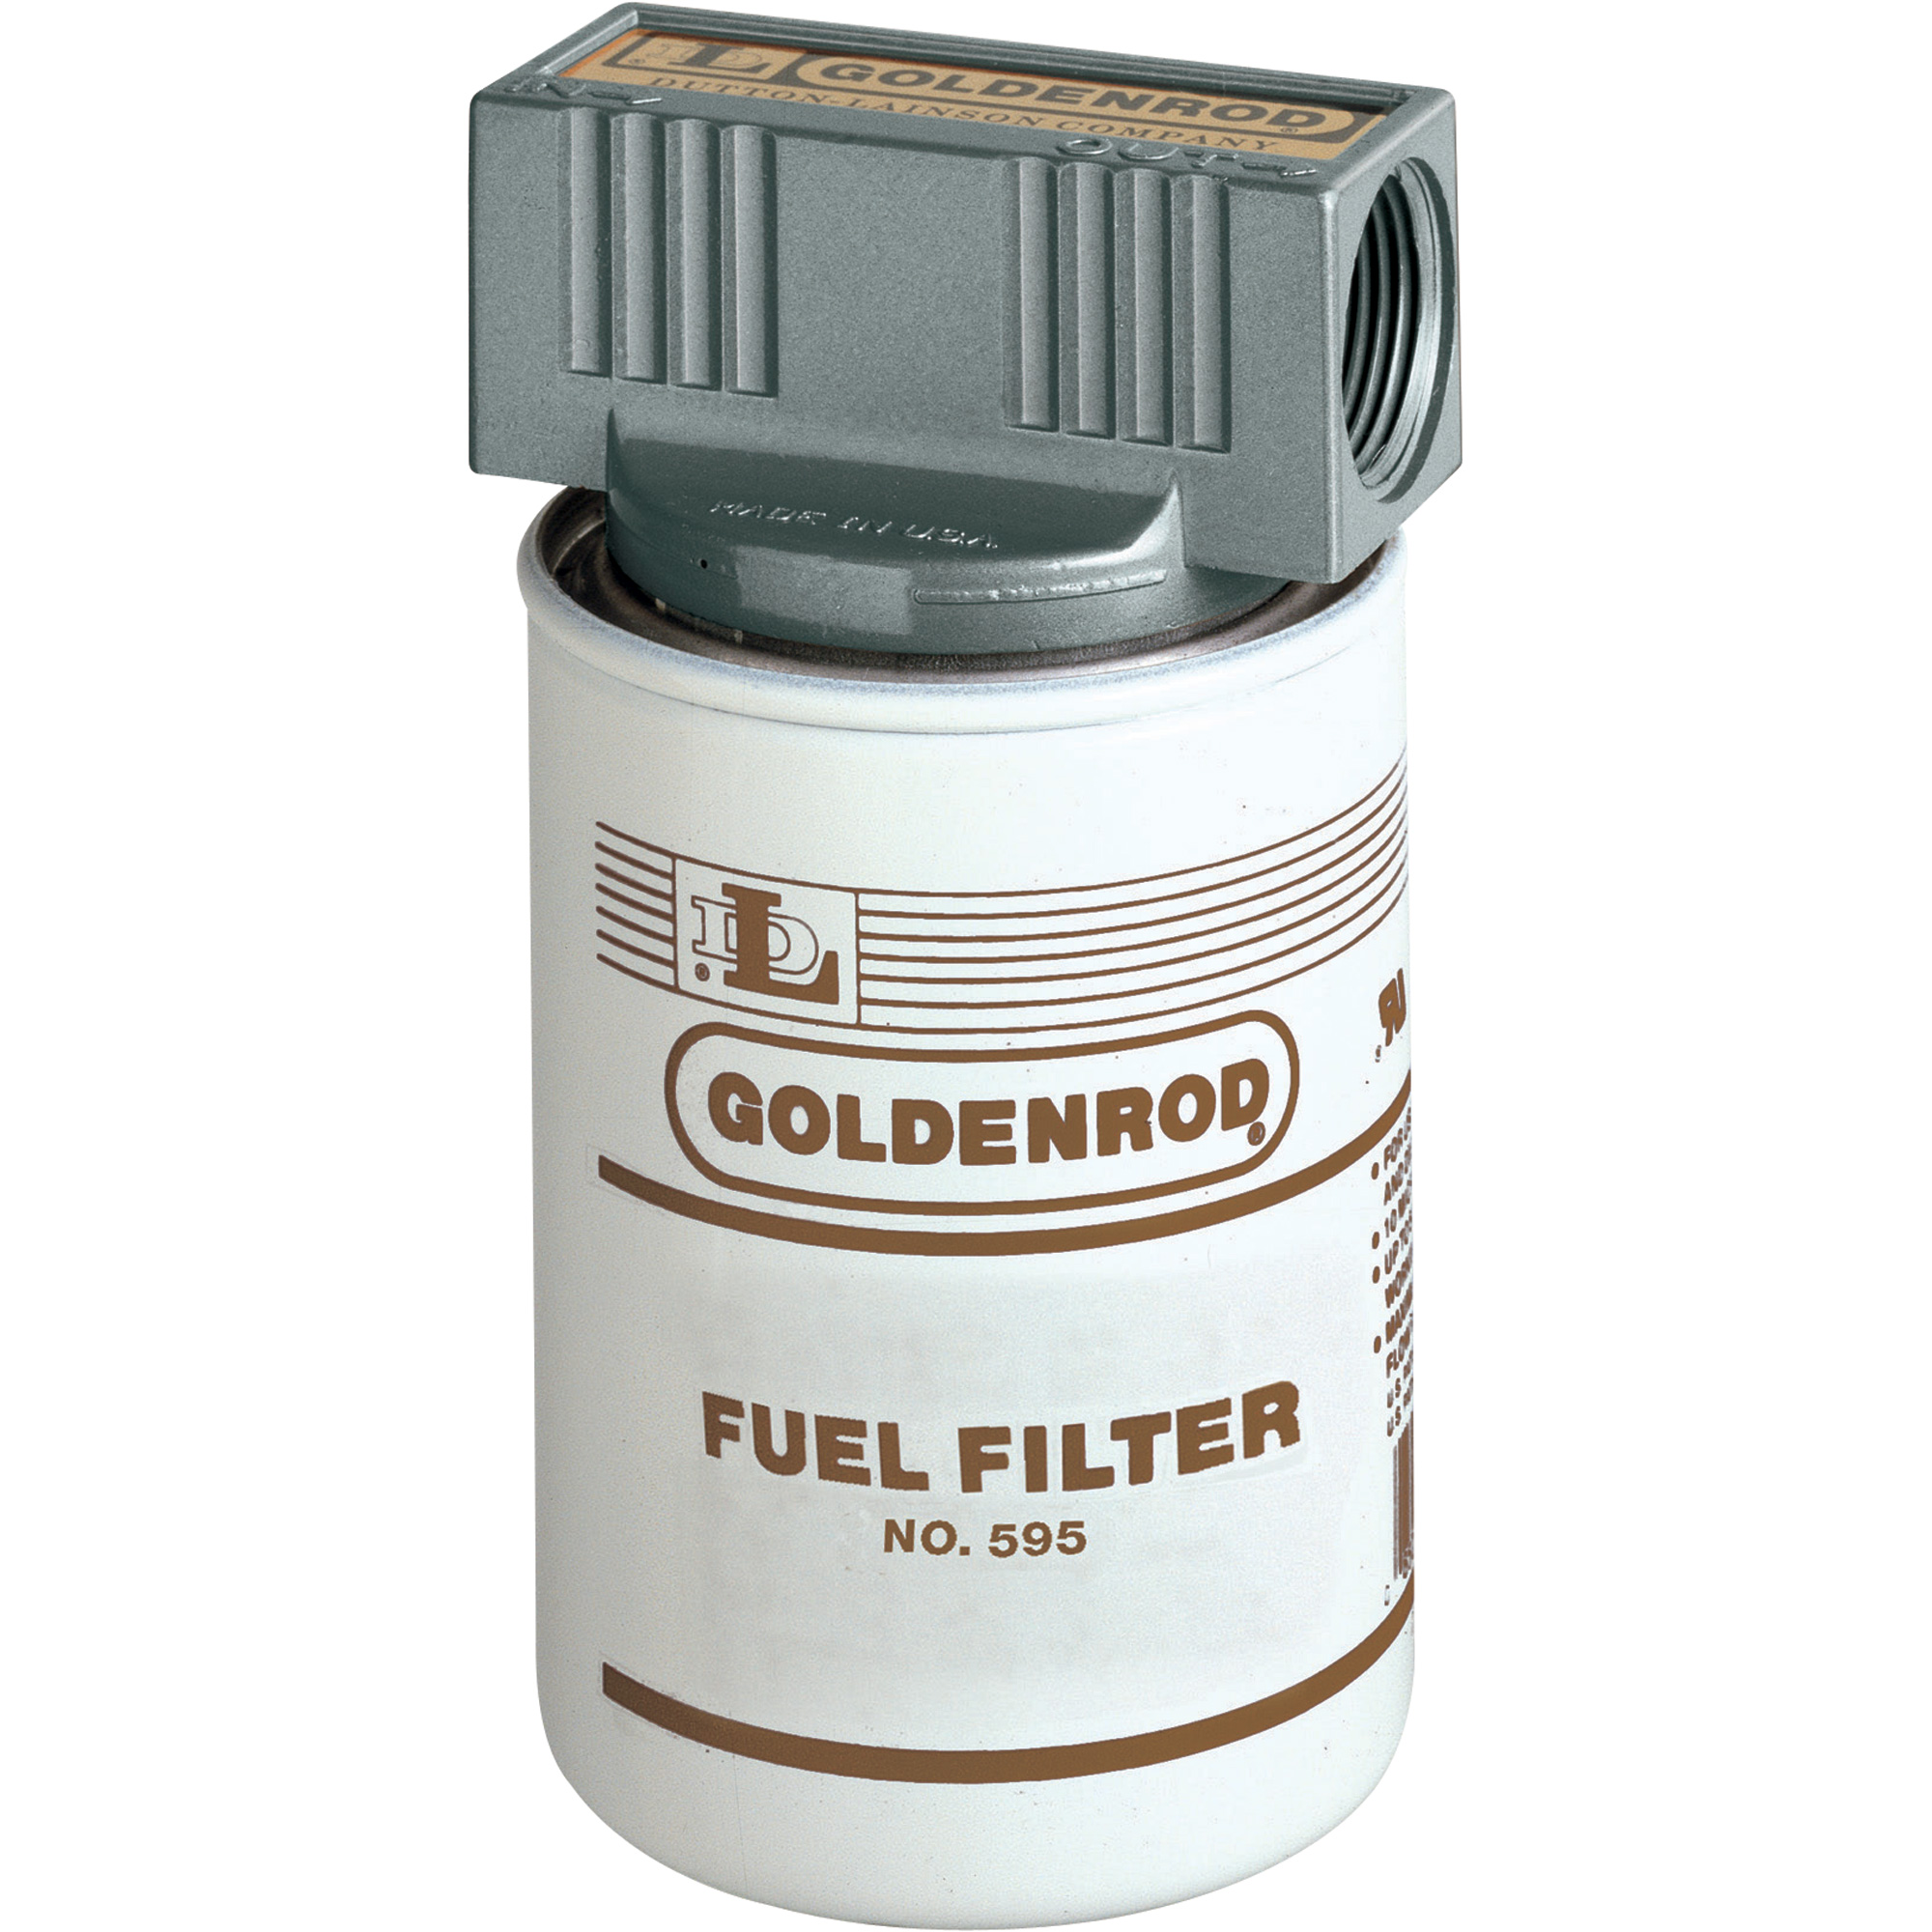 Oil Filters Fuel Northern Tool Equipment Kubota Filter Mount Advantage Exclusive Goldenrod Spin On And Cap 1in Fittings Model 595